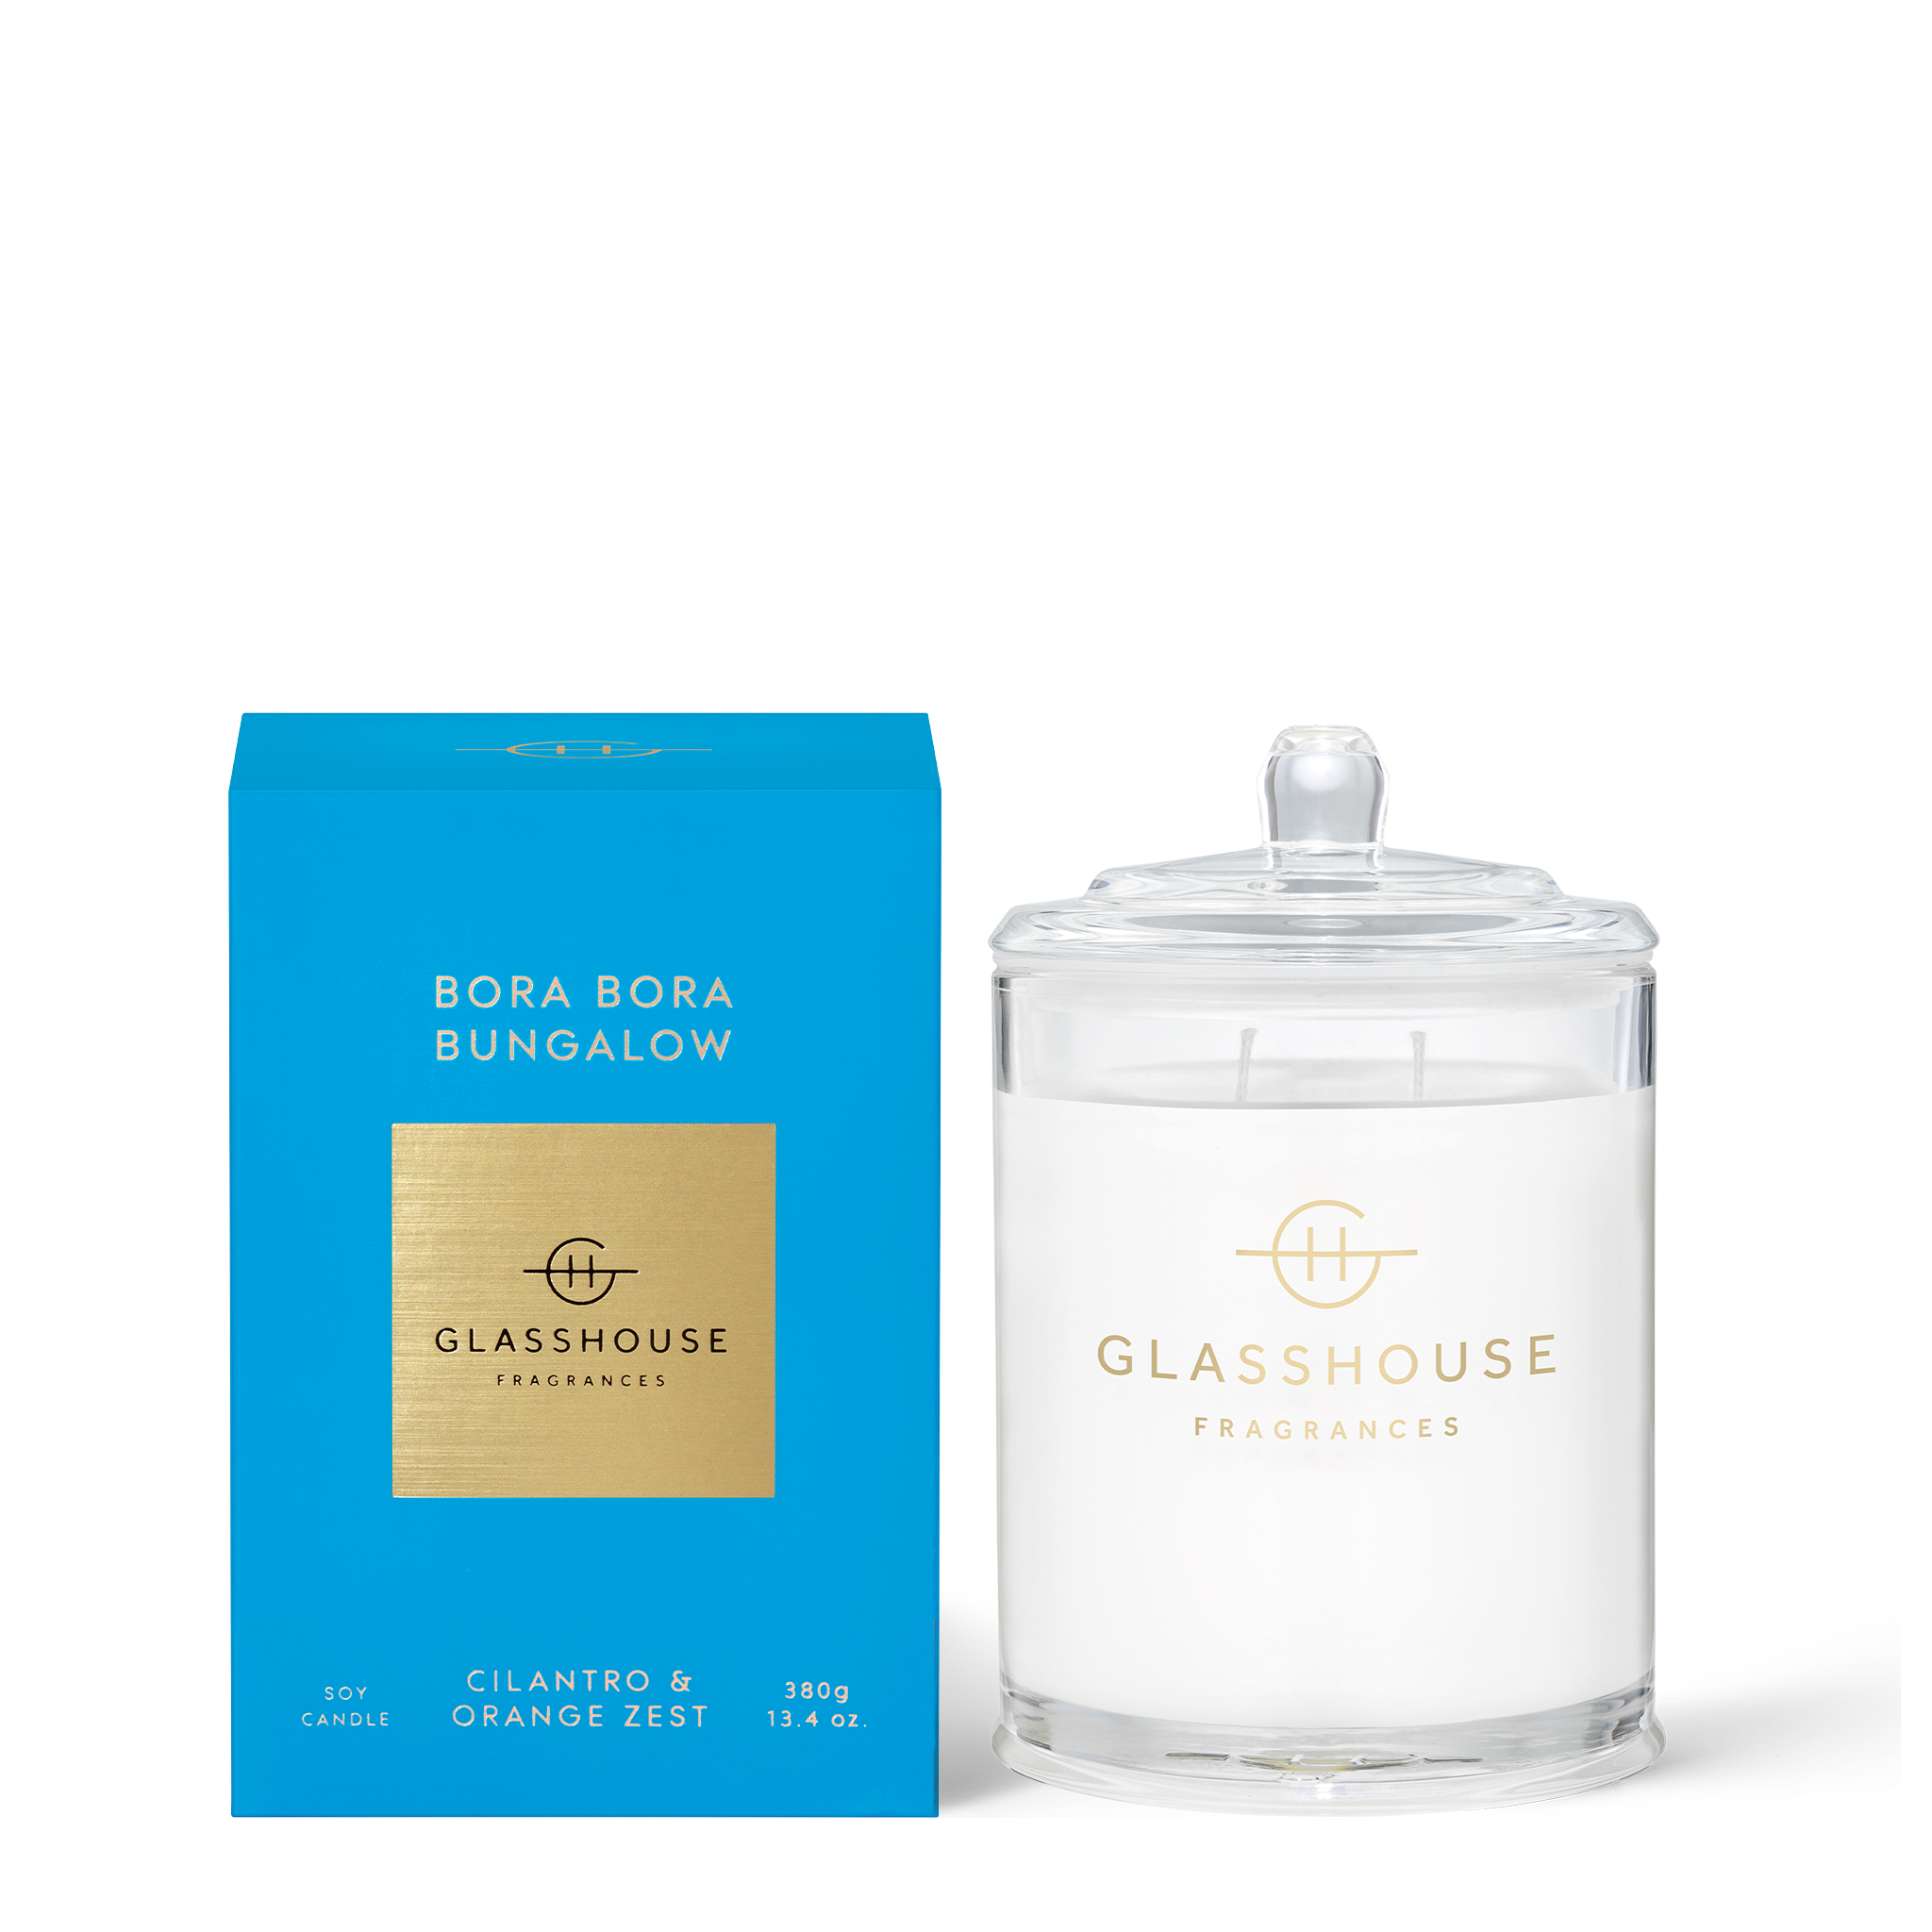 GLASSHOUSE FRAGRANCES Bora Bora Bungalow 380g Candle